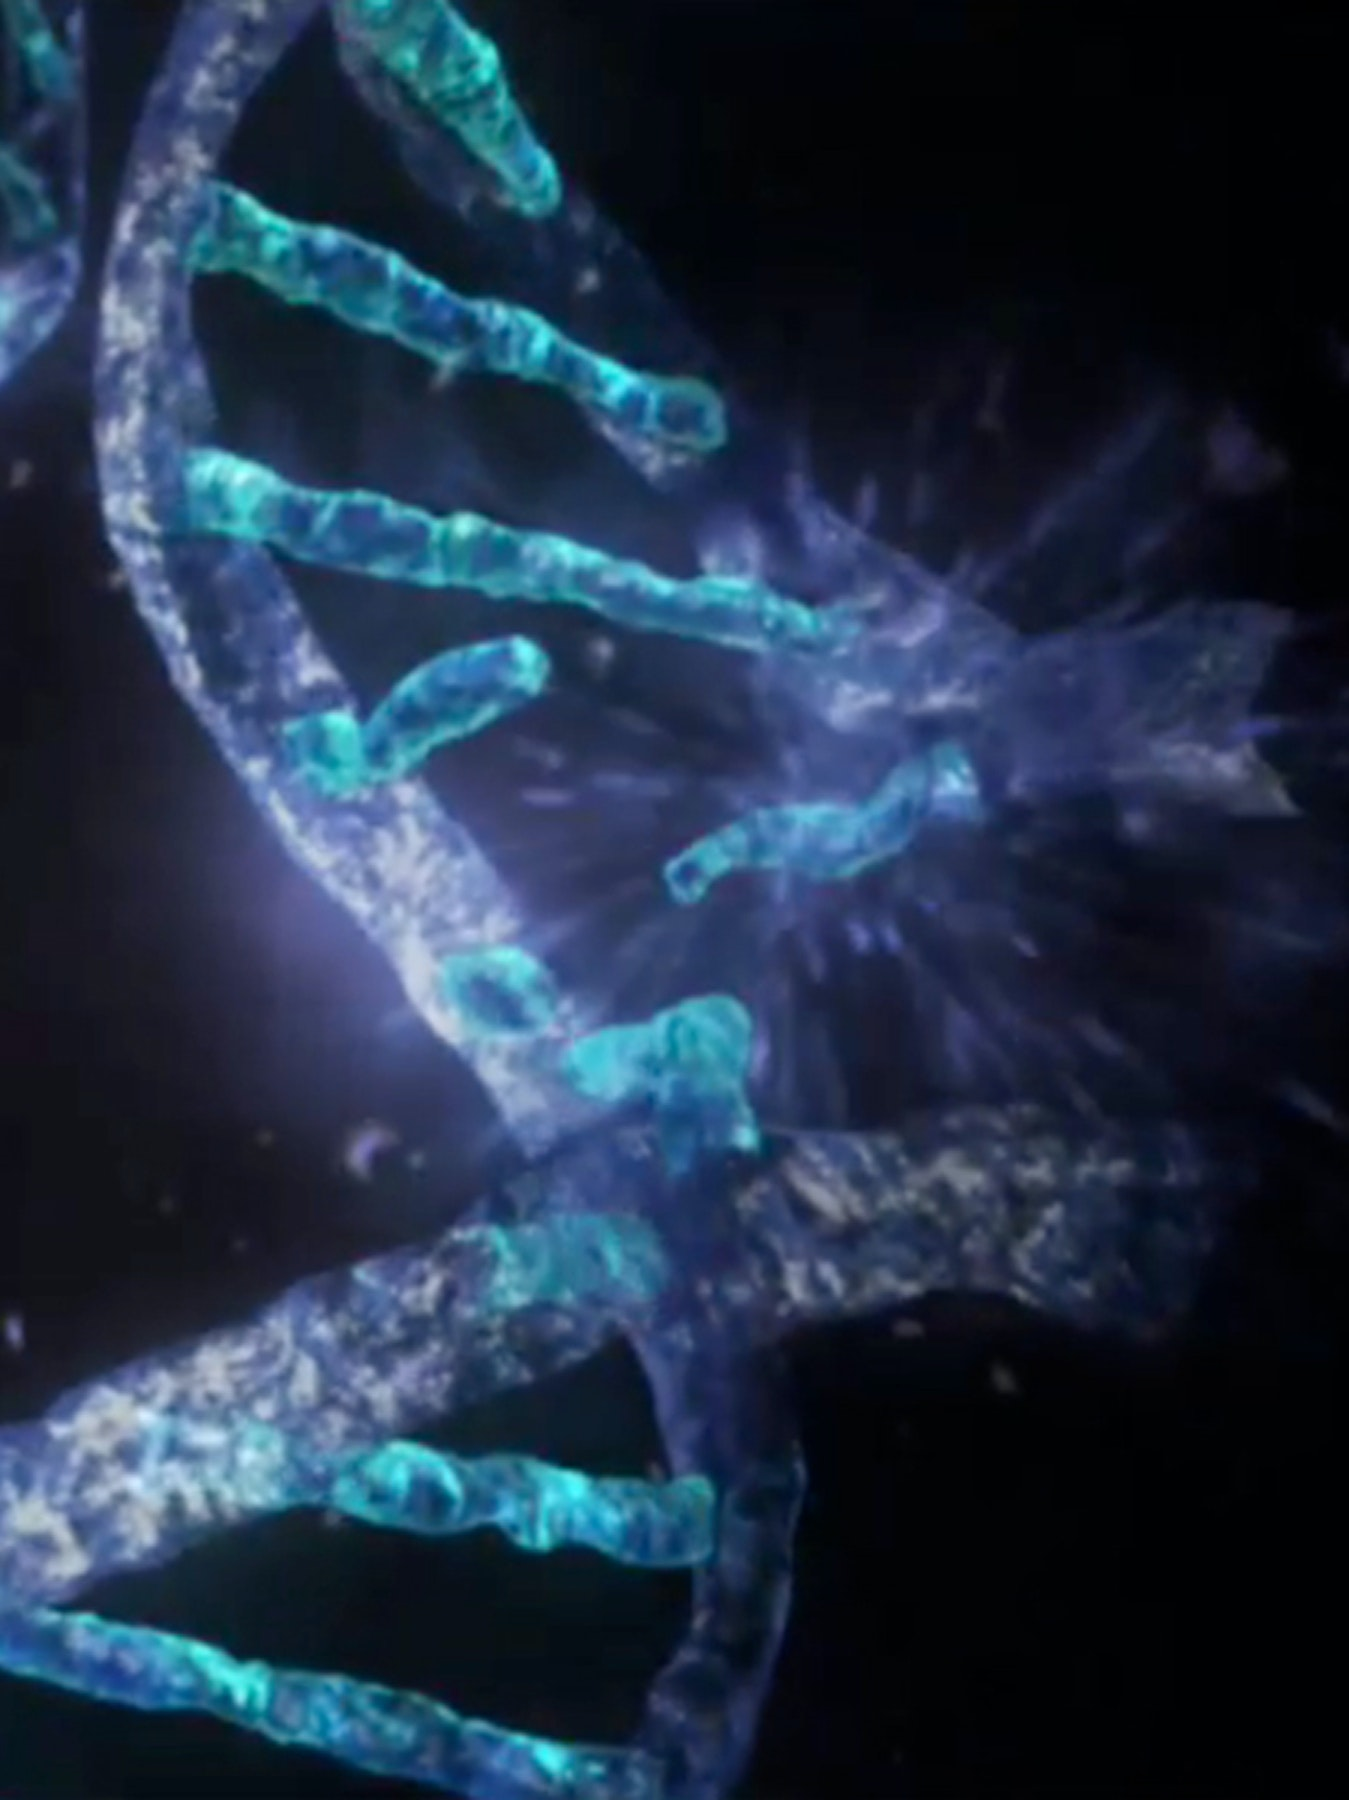 space radiation dna